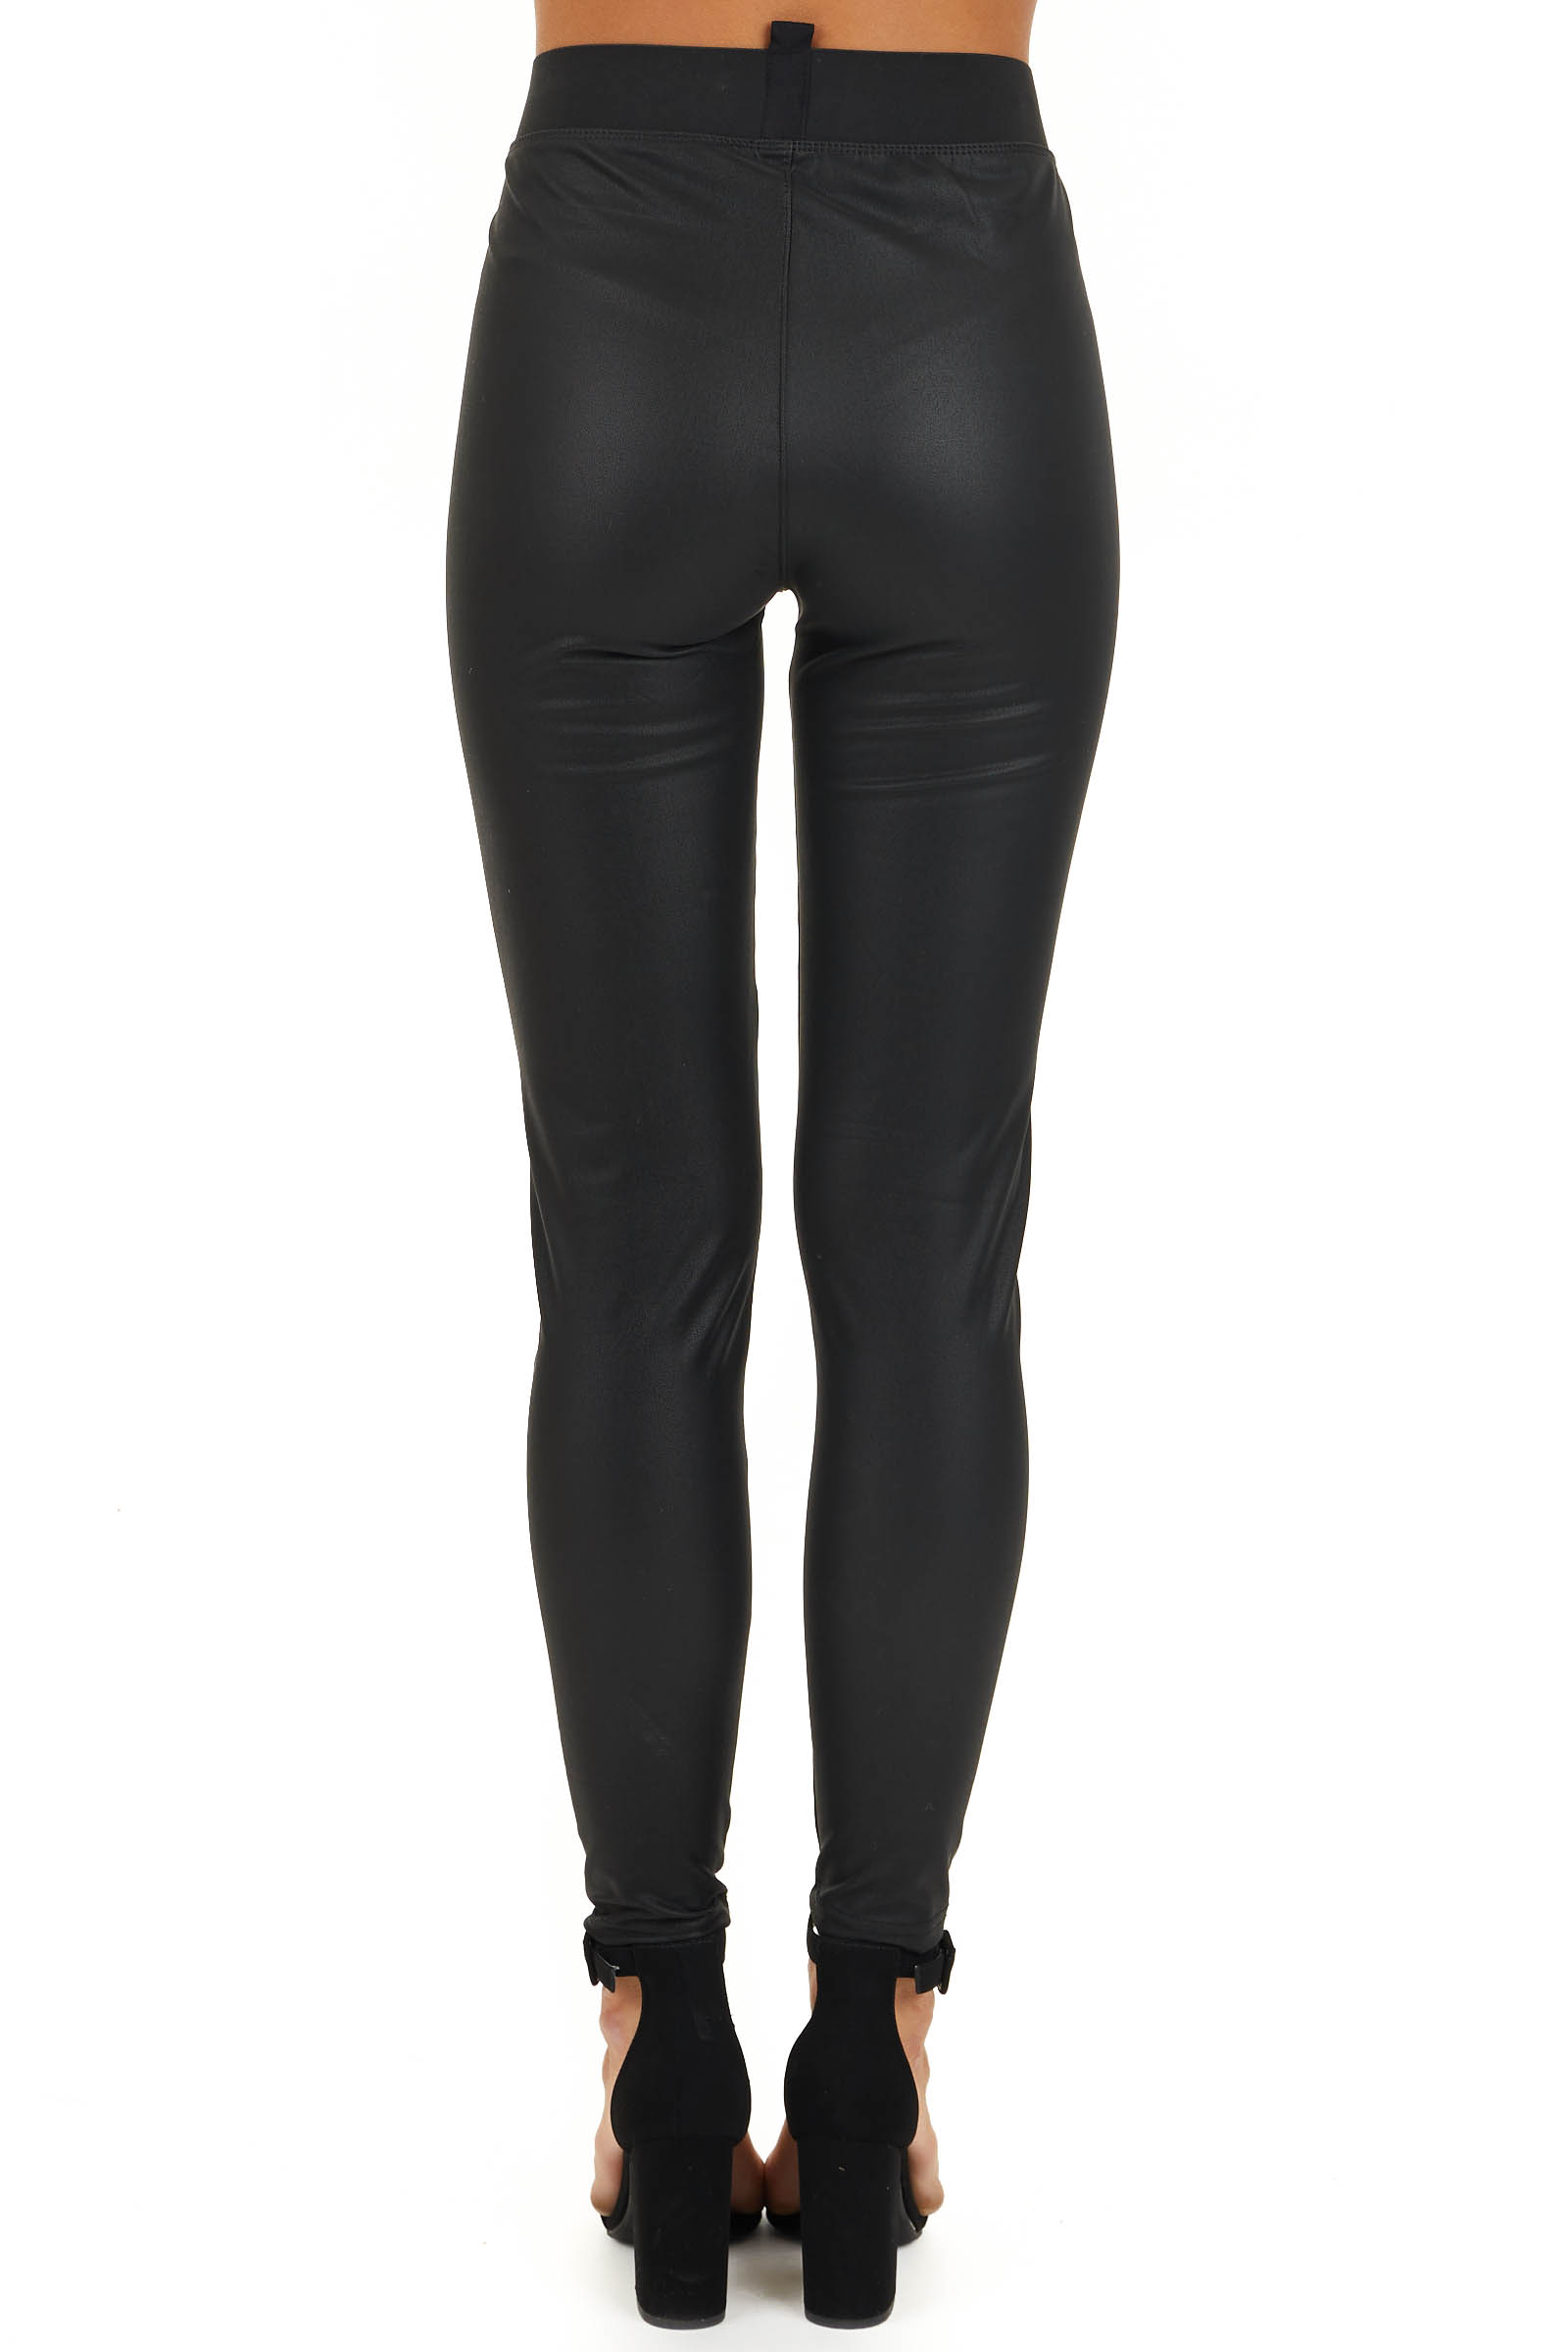 Black Faux Leather Fleece Lined Leggings with Elastic Waist back view